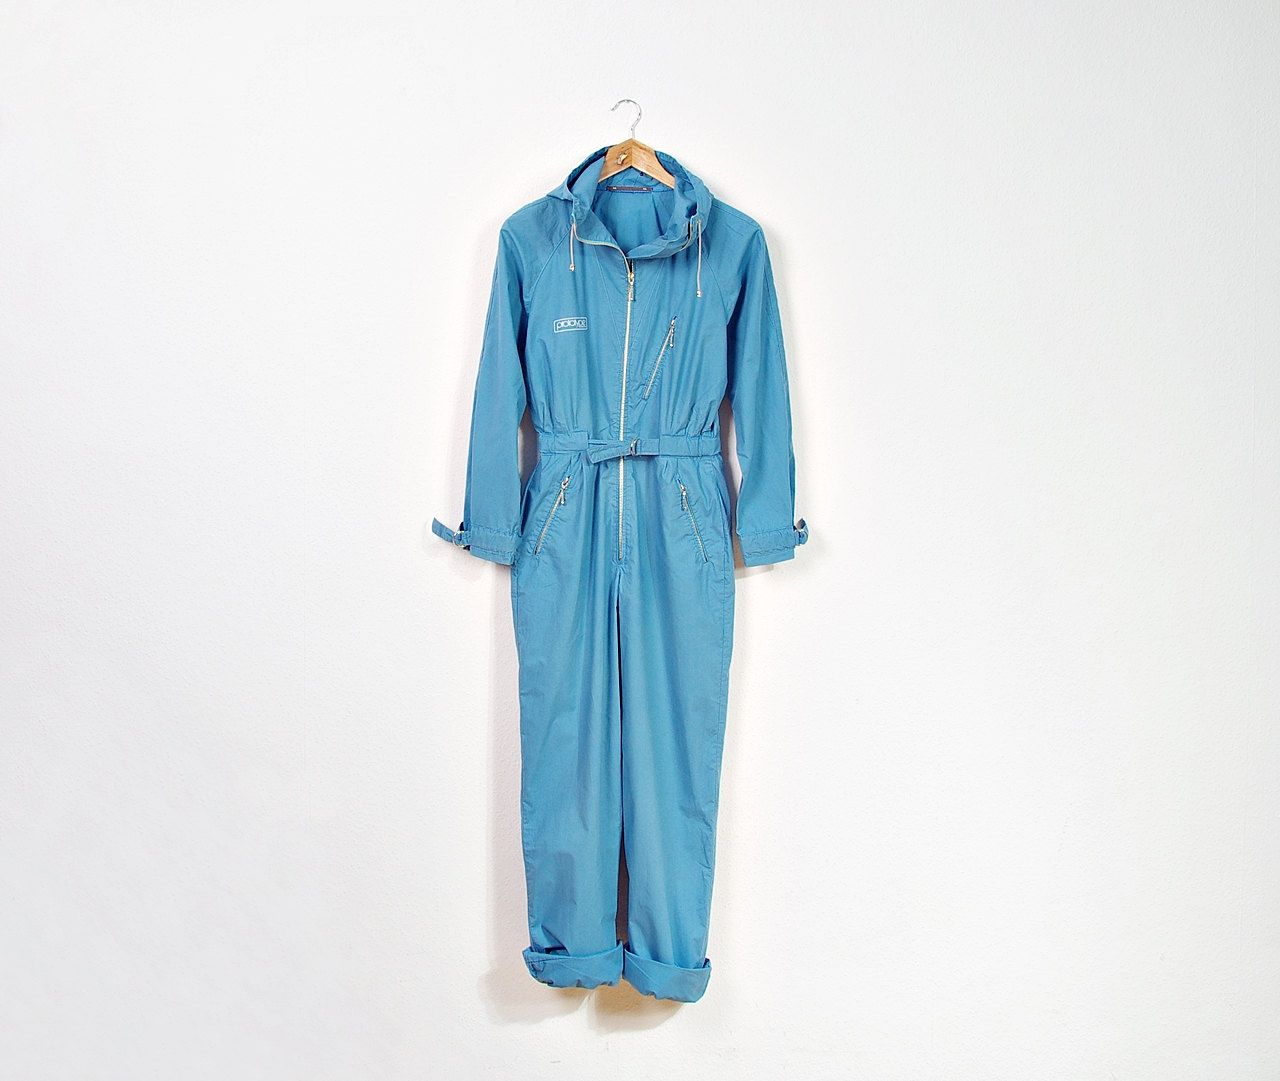 SALE - 70s PROTOTYPE Design Eliza Coveralls with Hoodie / Stellar Astronaut / Made in Norway / Size S by Only1Copy on Etsy